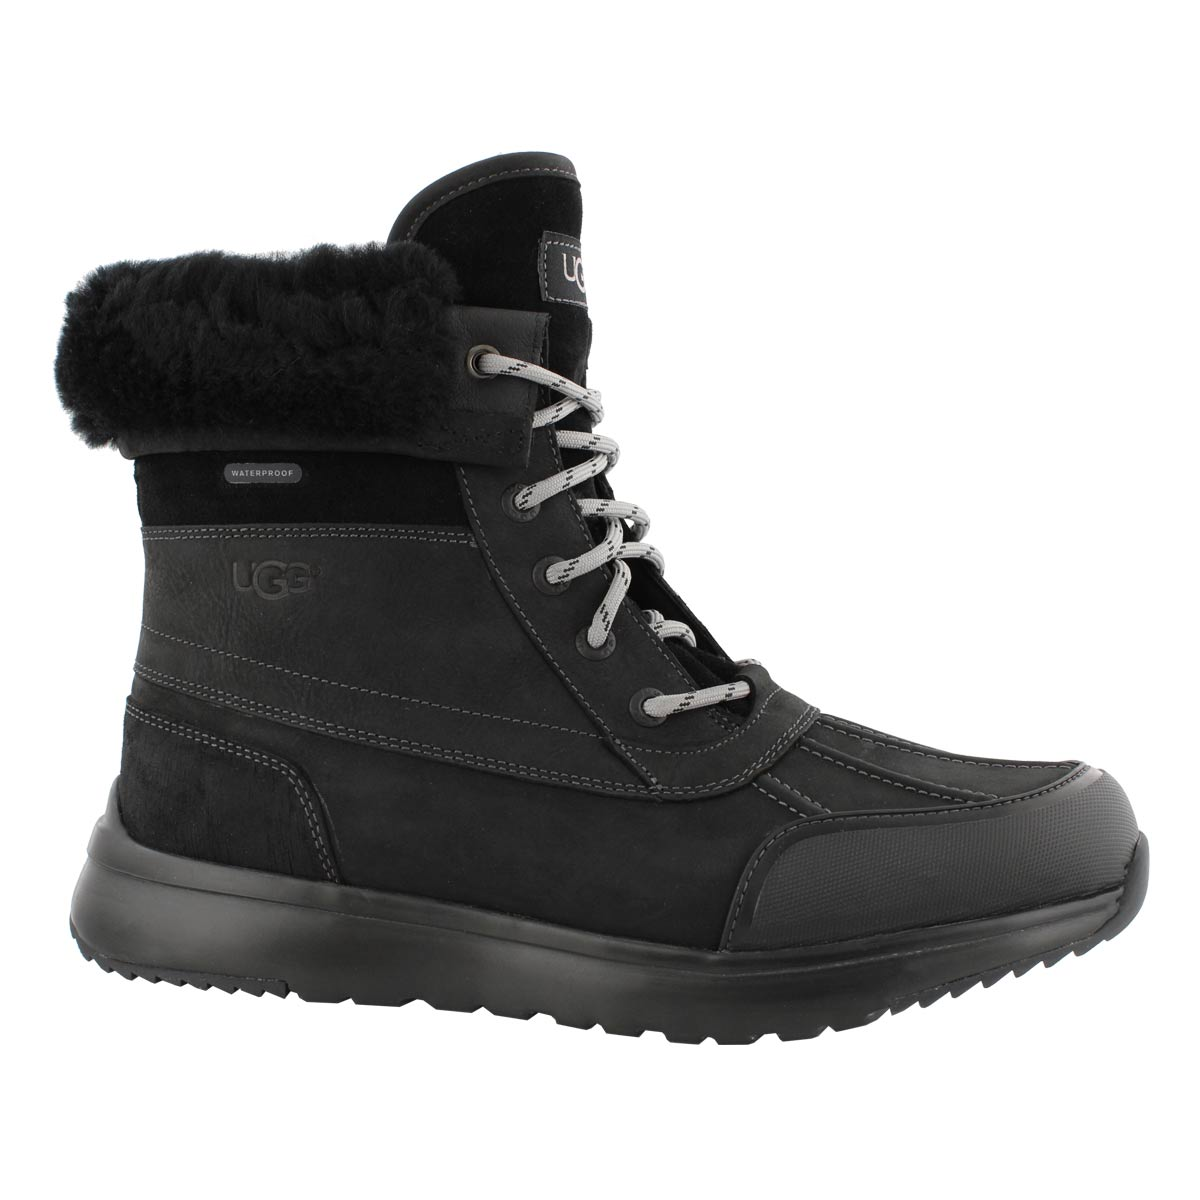 Mns Eliasson blk/blk lace up winter boot